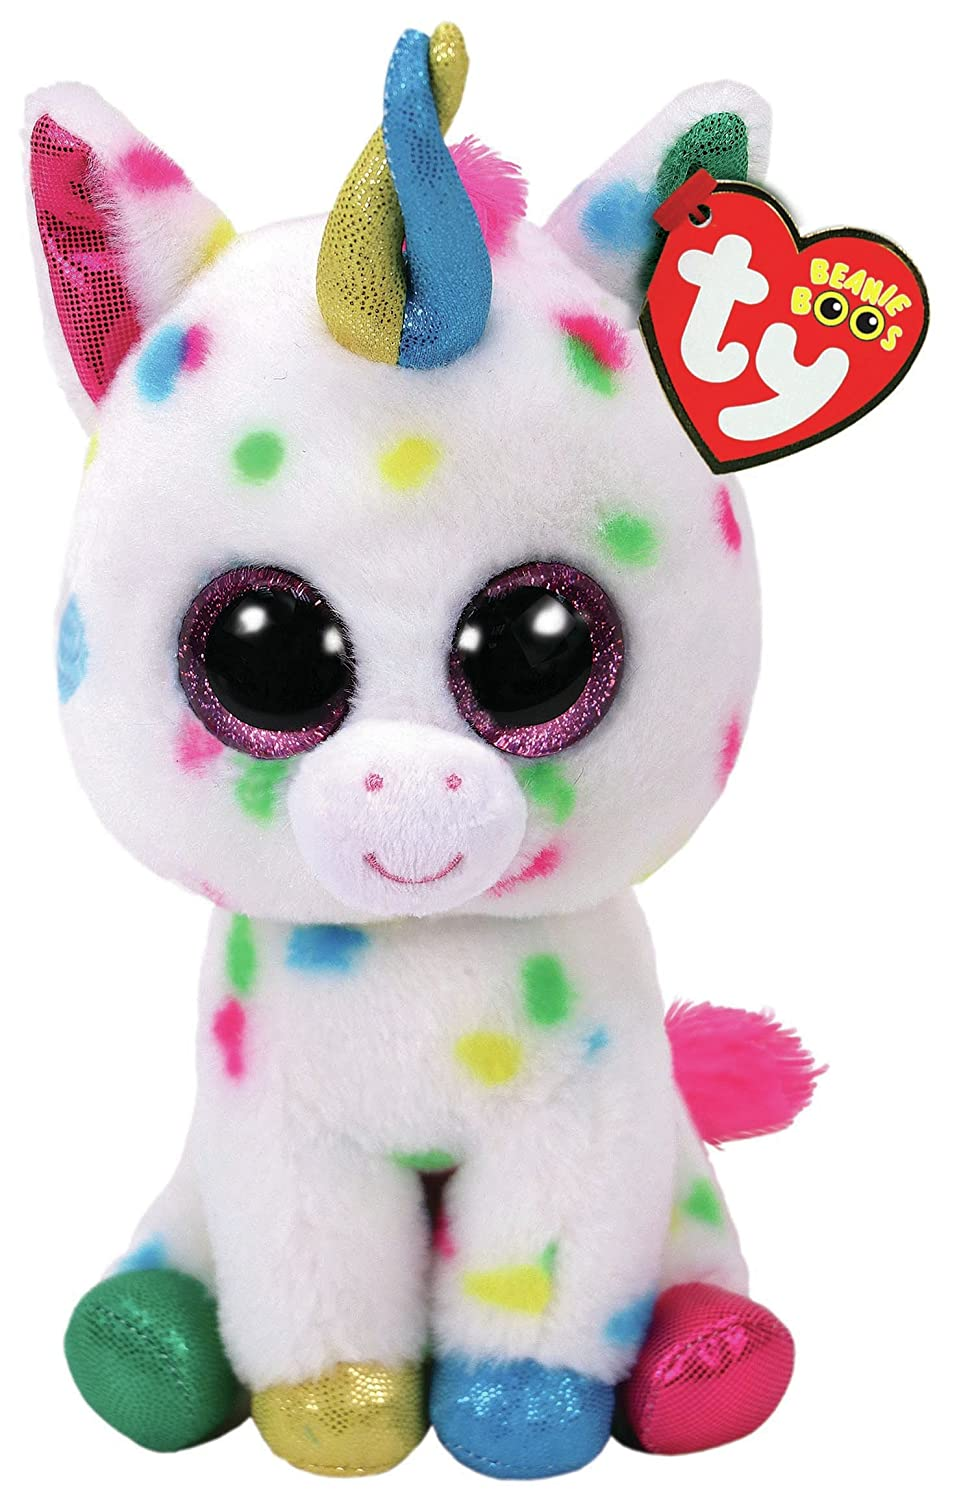 "TY Beanie Boo HARMONIE - Speckled Unicorn, 6"" regular size 6"" regular size 36898"